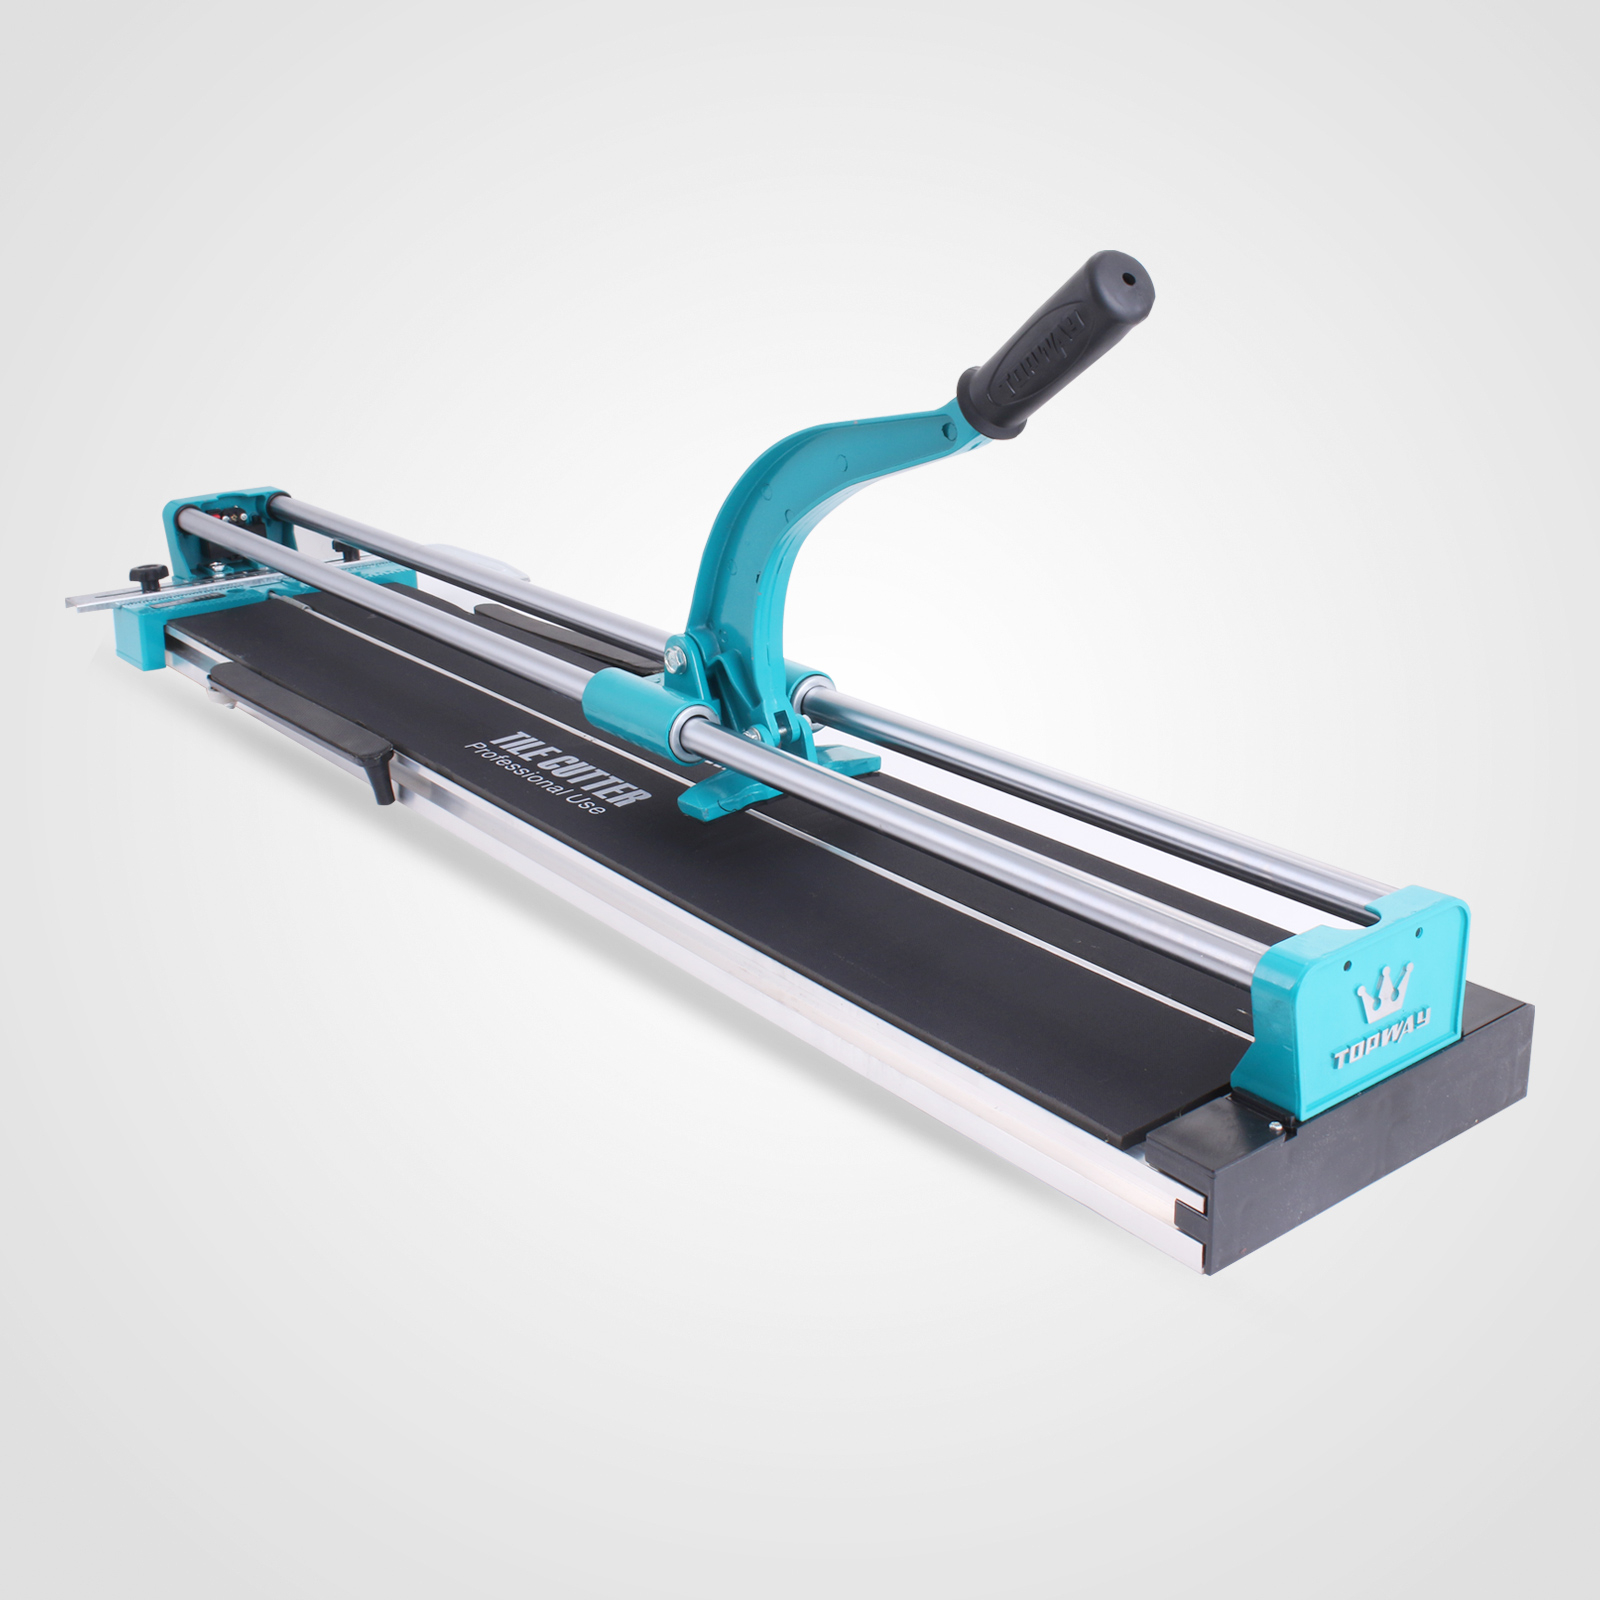 40 Quot Manual Tile Cutter Cutting Machine For Large Tiles